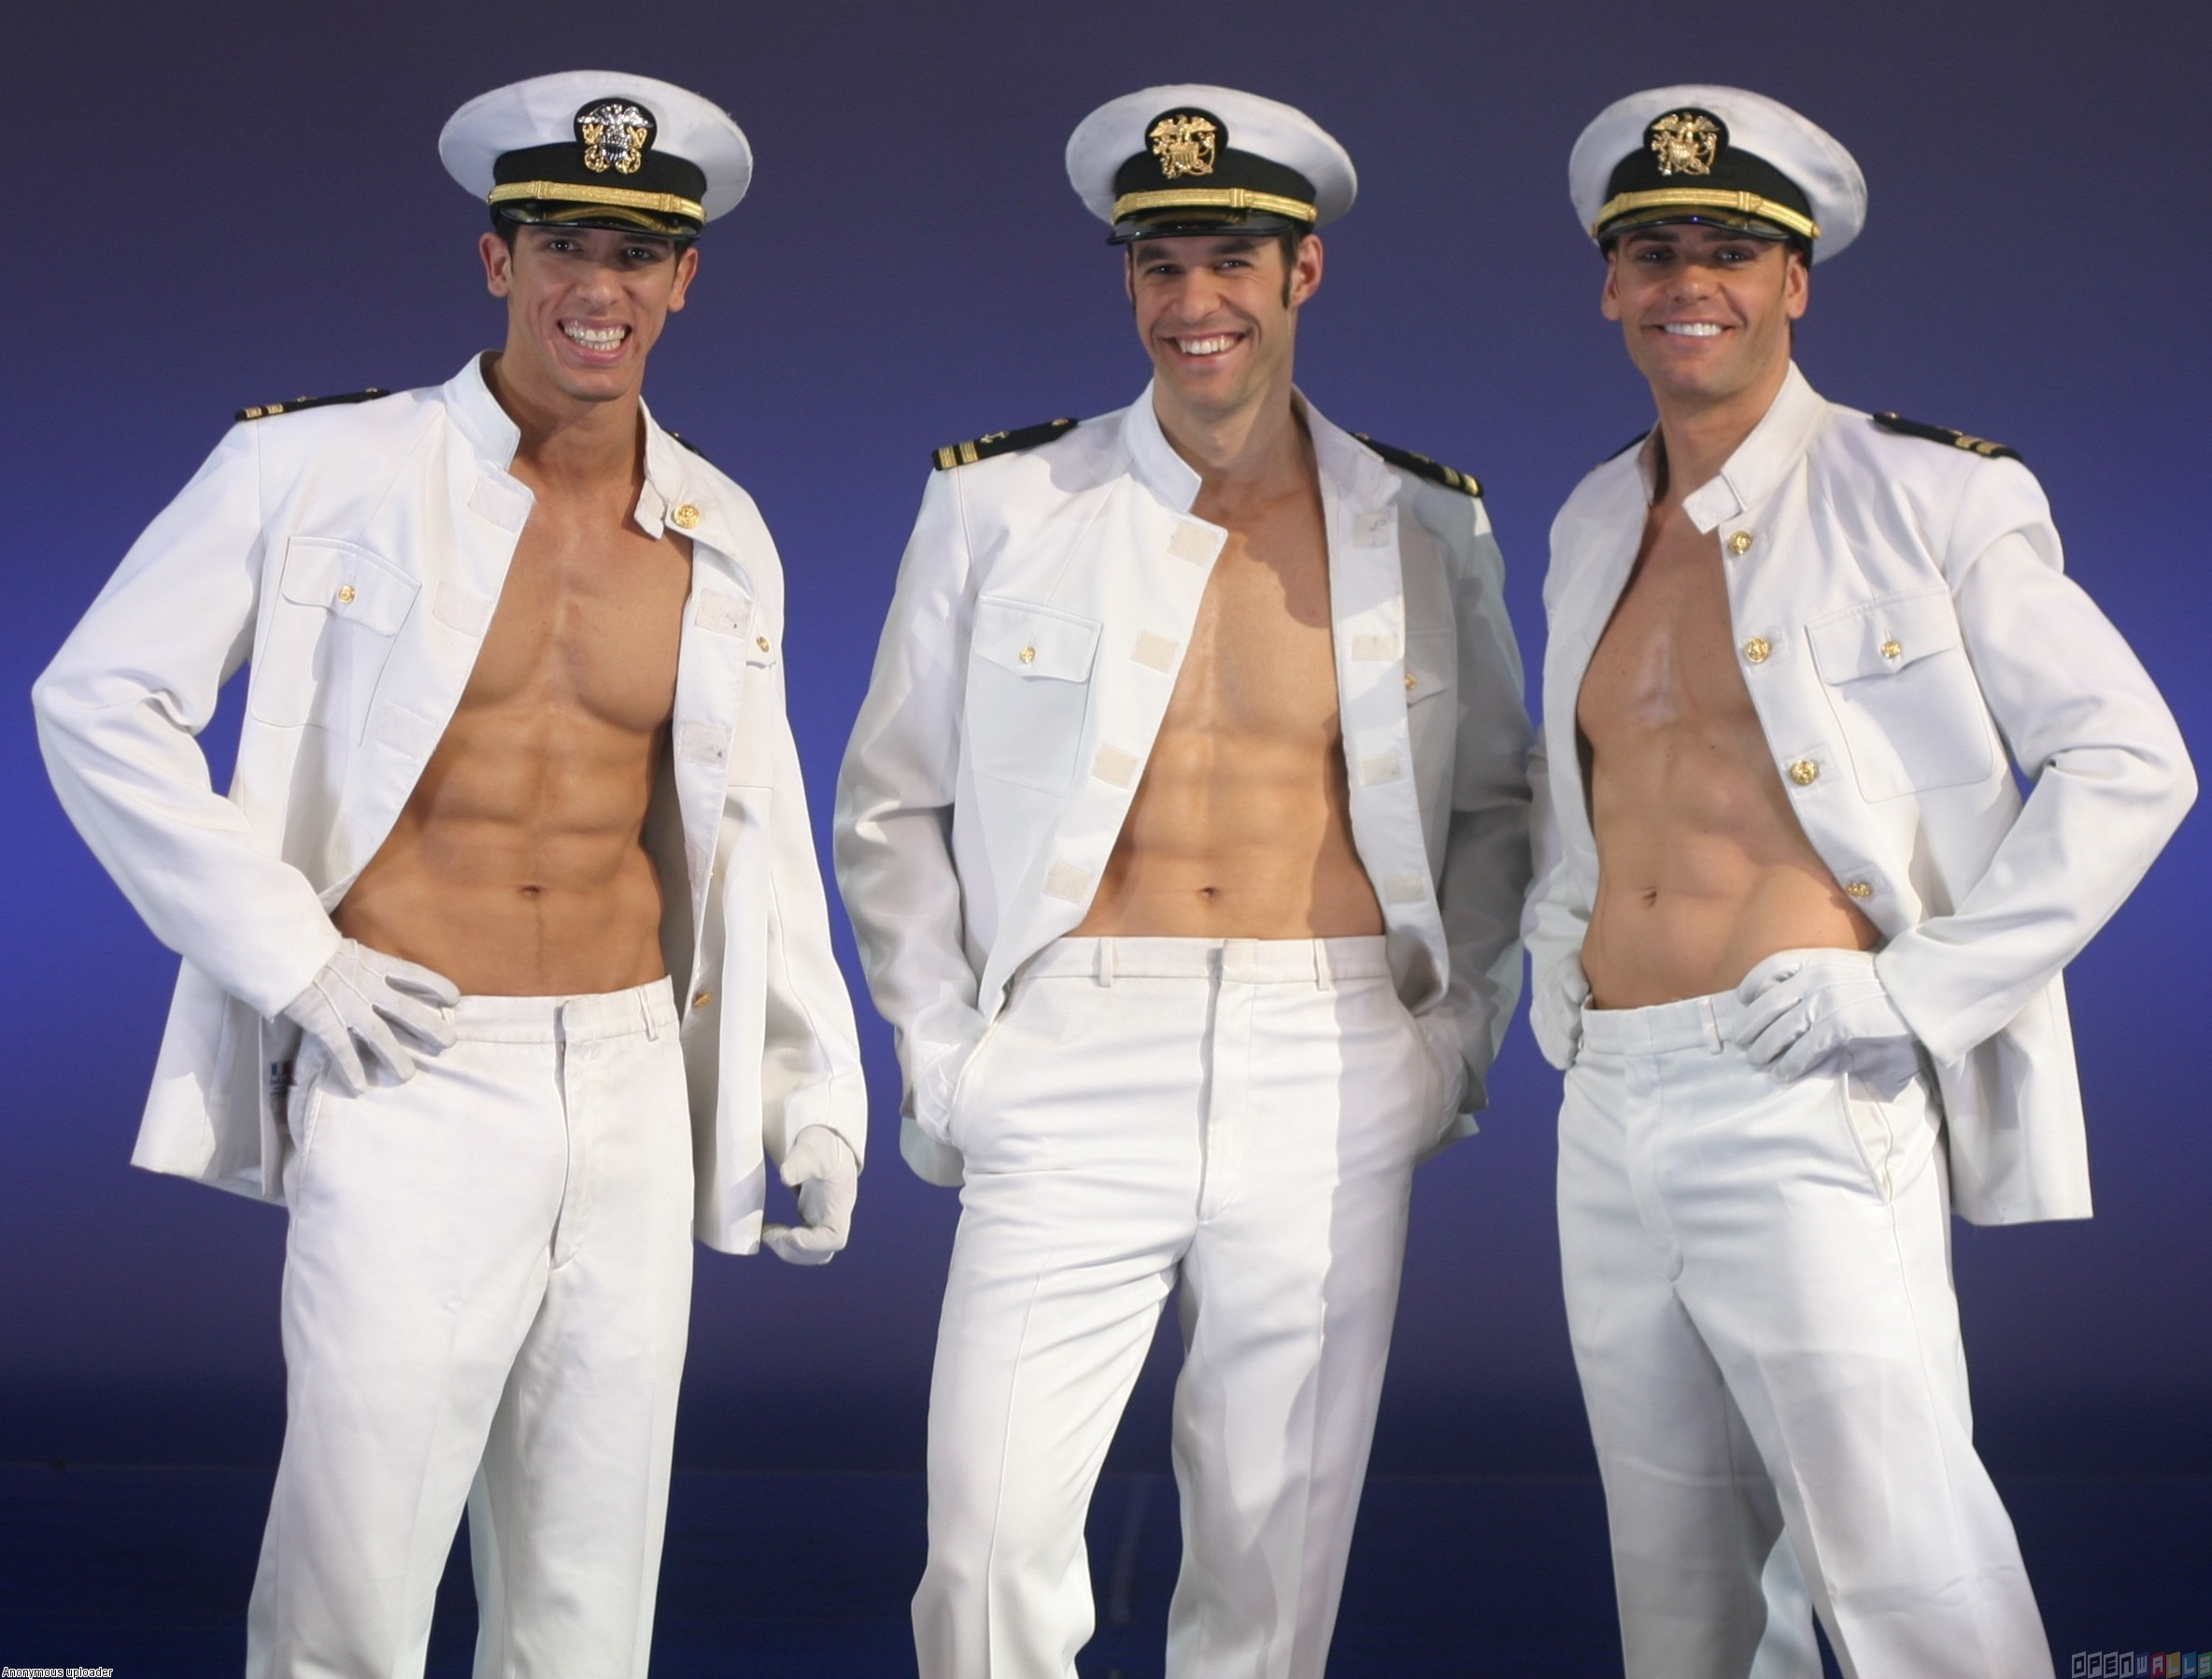 sexy_men_chippendales_2368x1797 (1).jpg